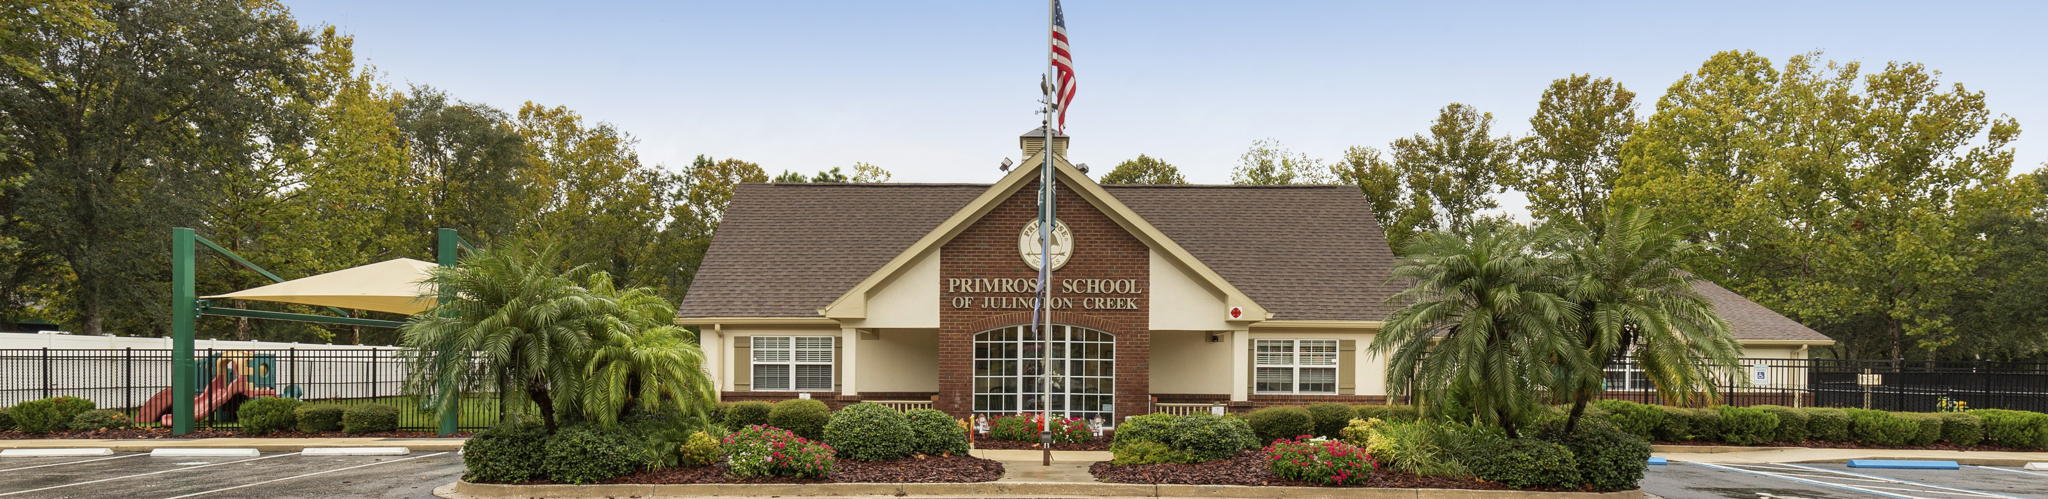 Exterior of a Primrose School of Julington Creek